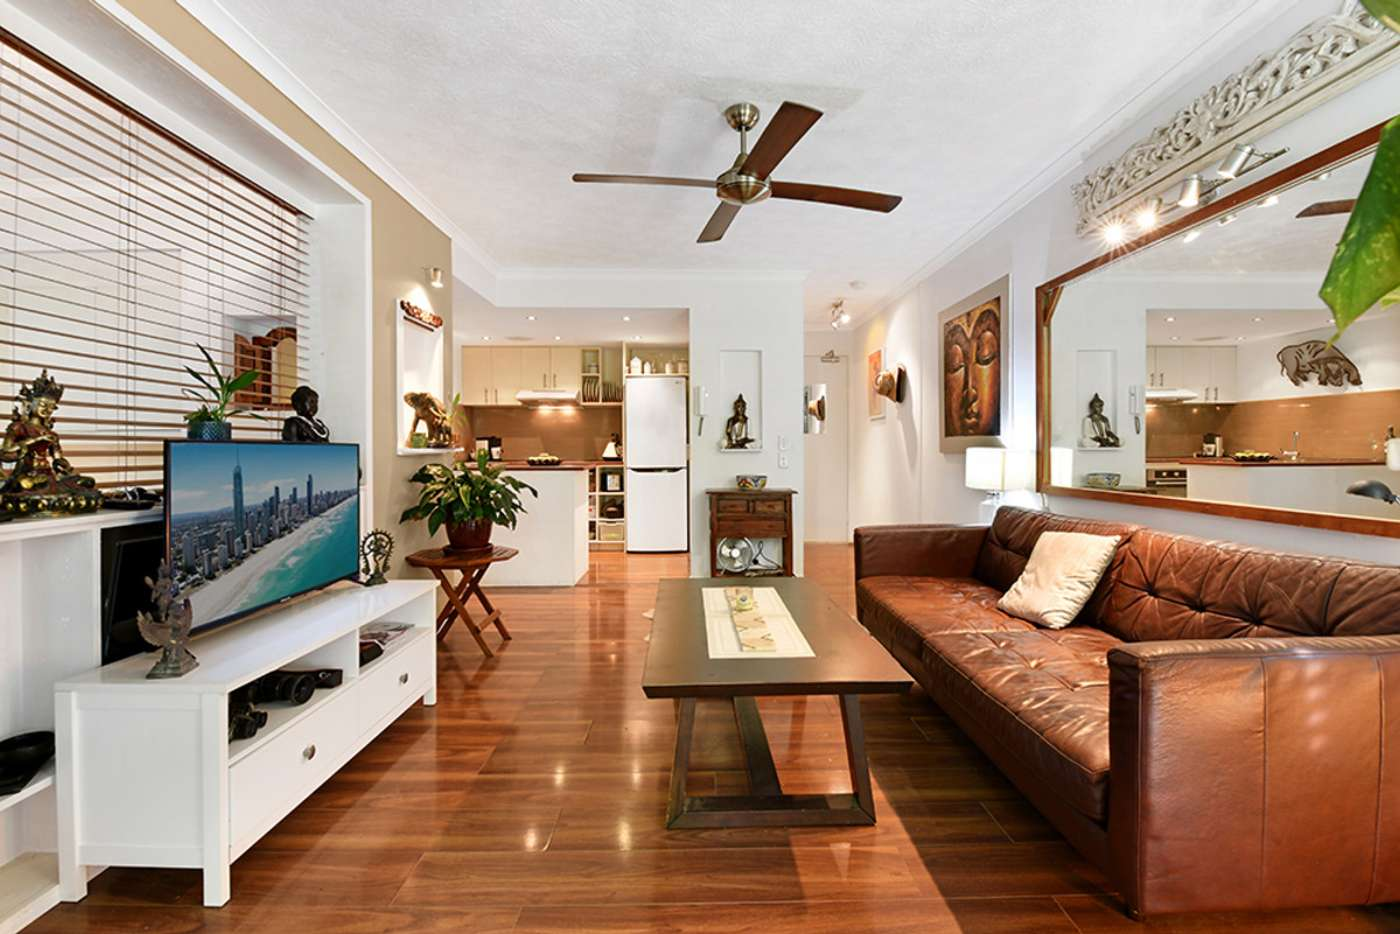 Main view of Homely apartment listing, 5/193 Surf Parade, Surfers Paradise QLD 4217